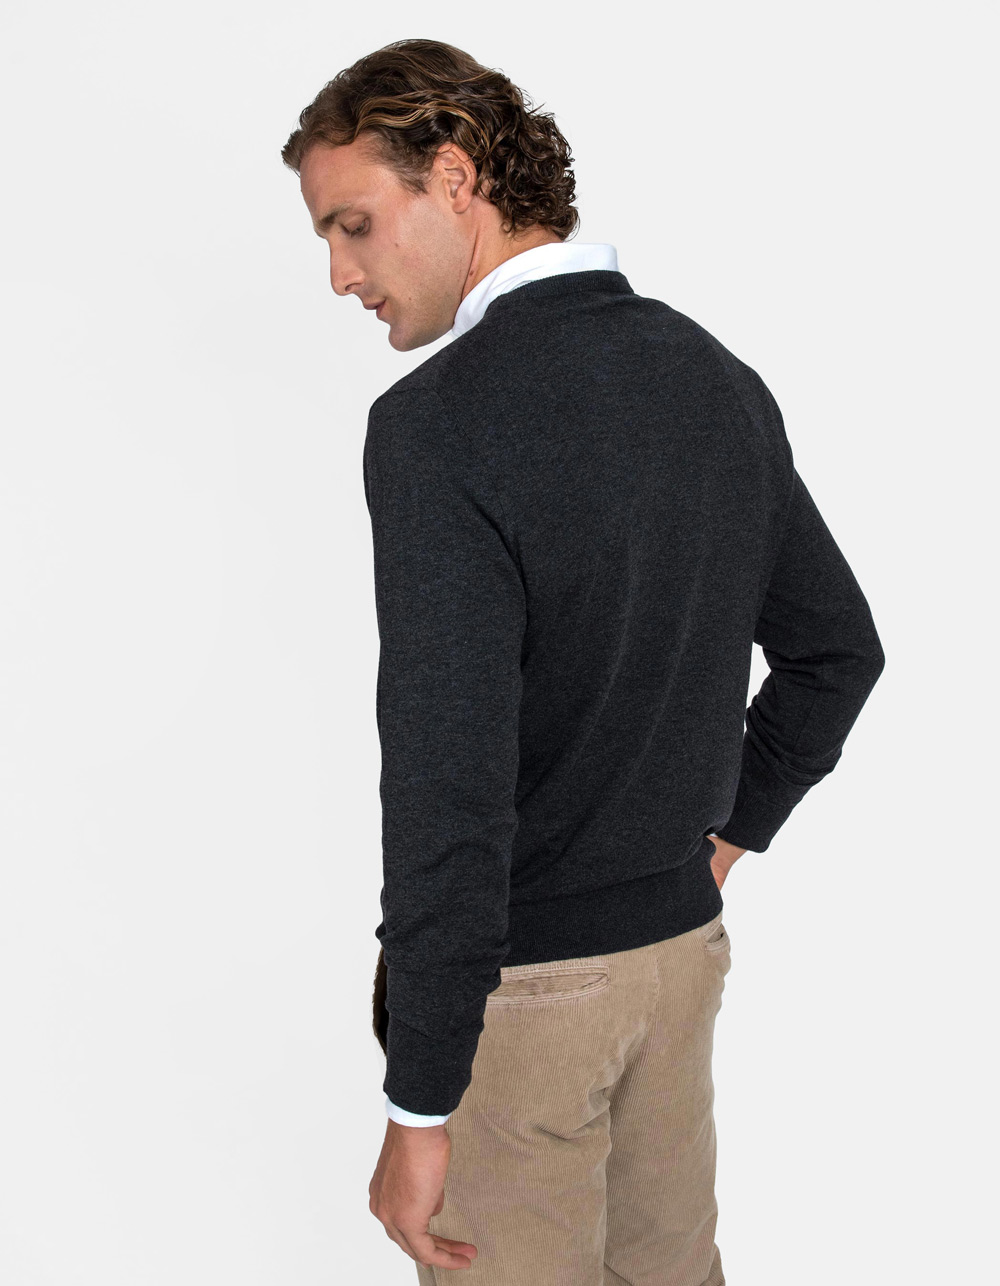 Charcoal crew neck sweater - Backside